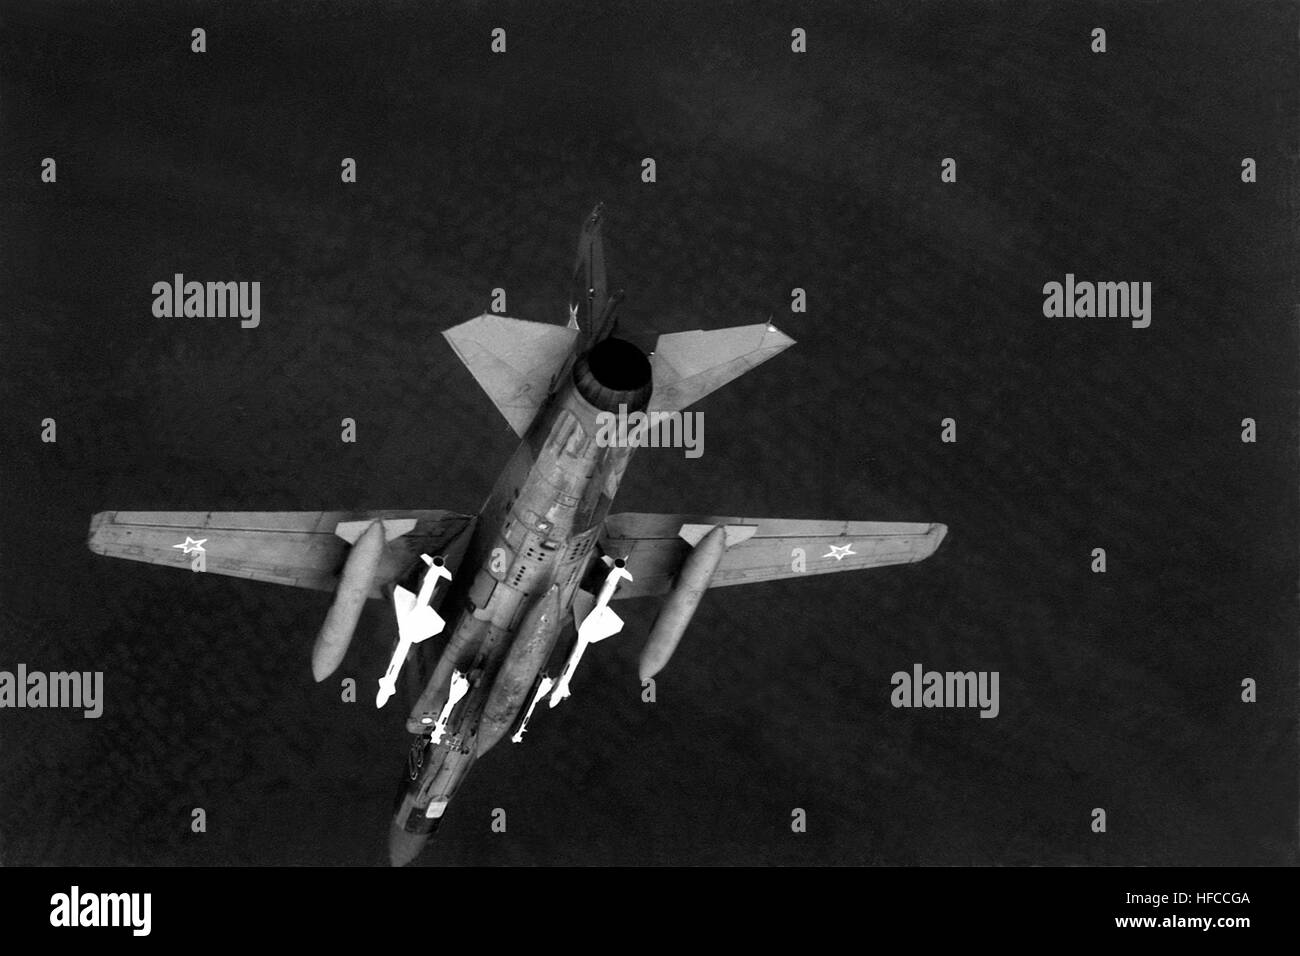 An air-to-air underside view of a Soviet MiG-23 Flogger aircraft.  The aircraft is armed with AA-7 Apex missiles - Stock Image